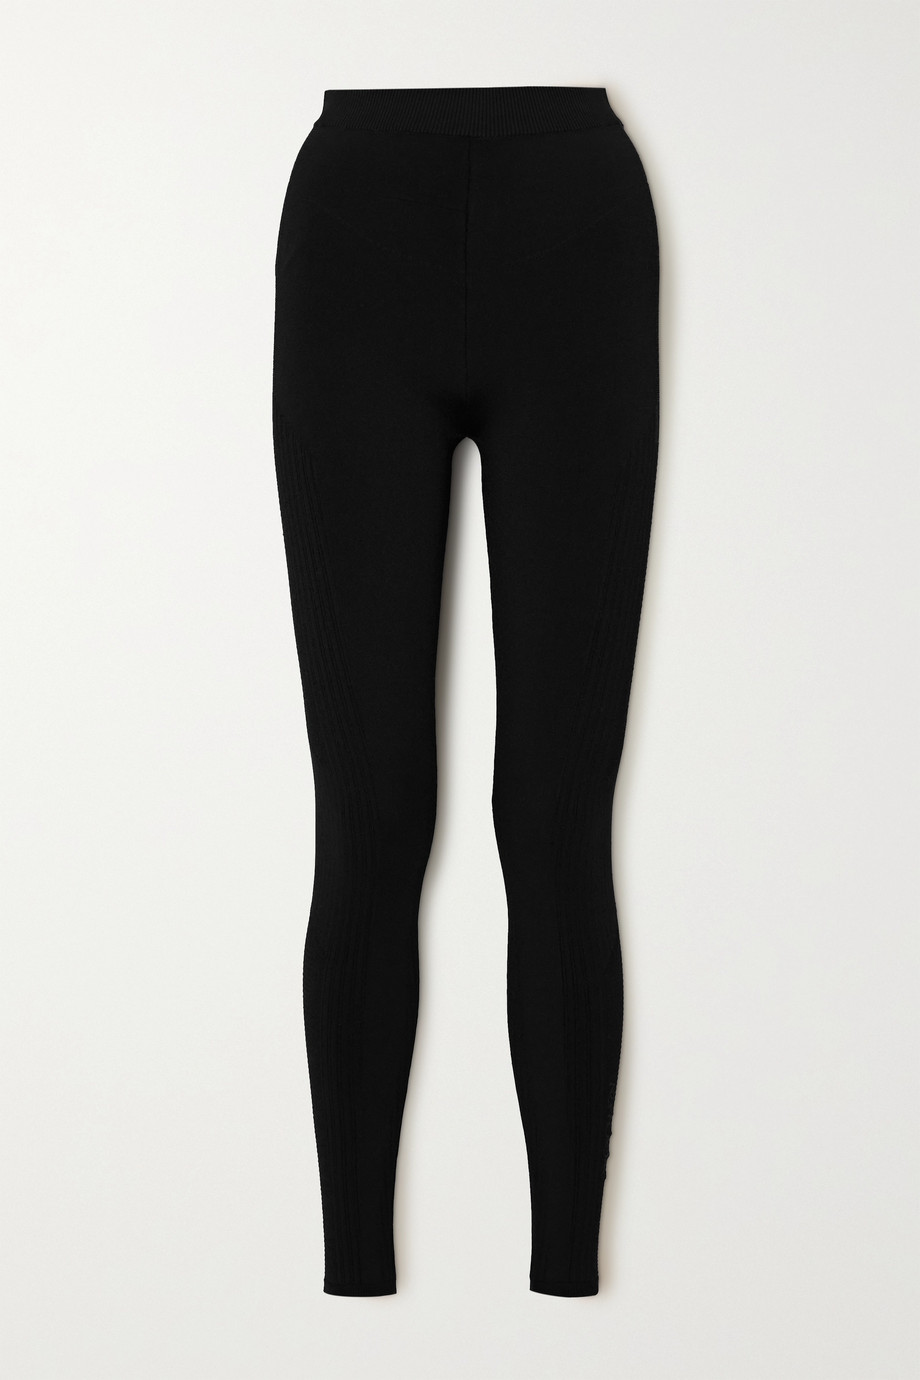 AZ FACTORY MyBody paneled stretch-knit leggings